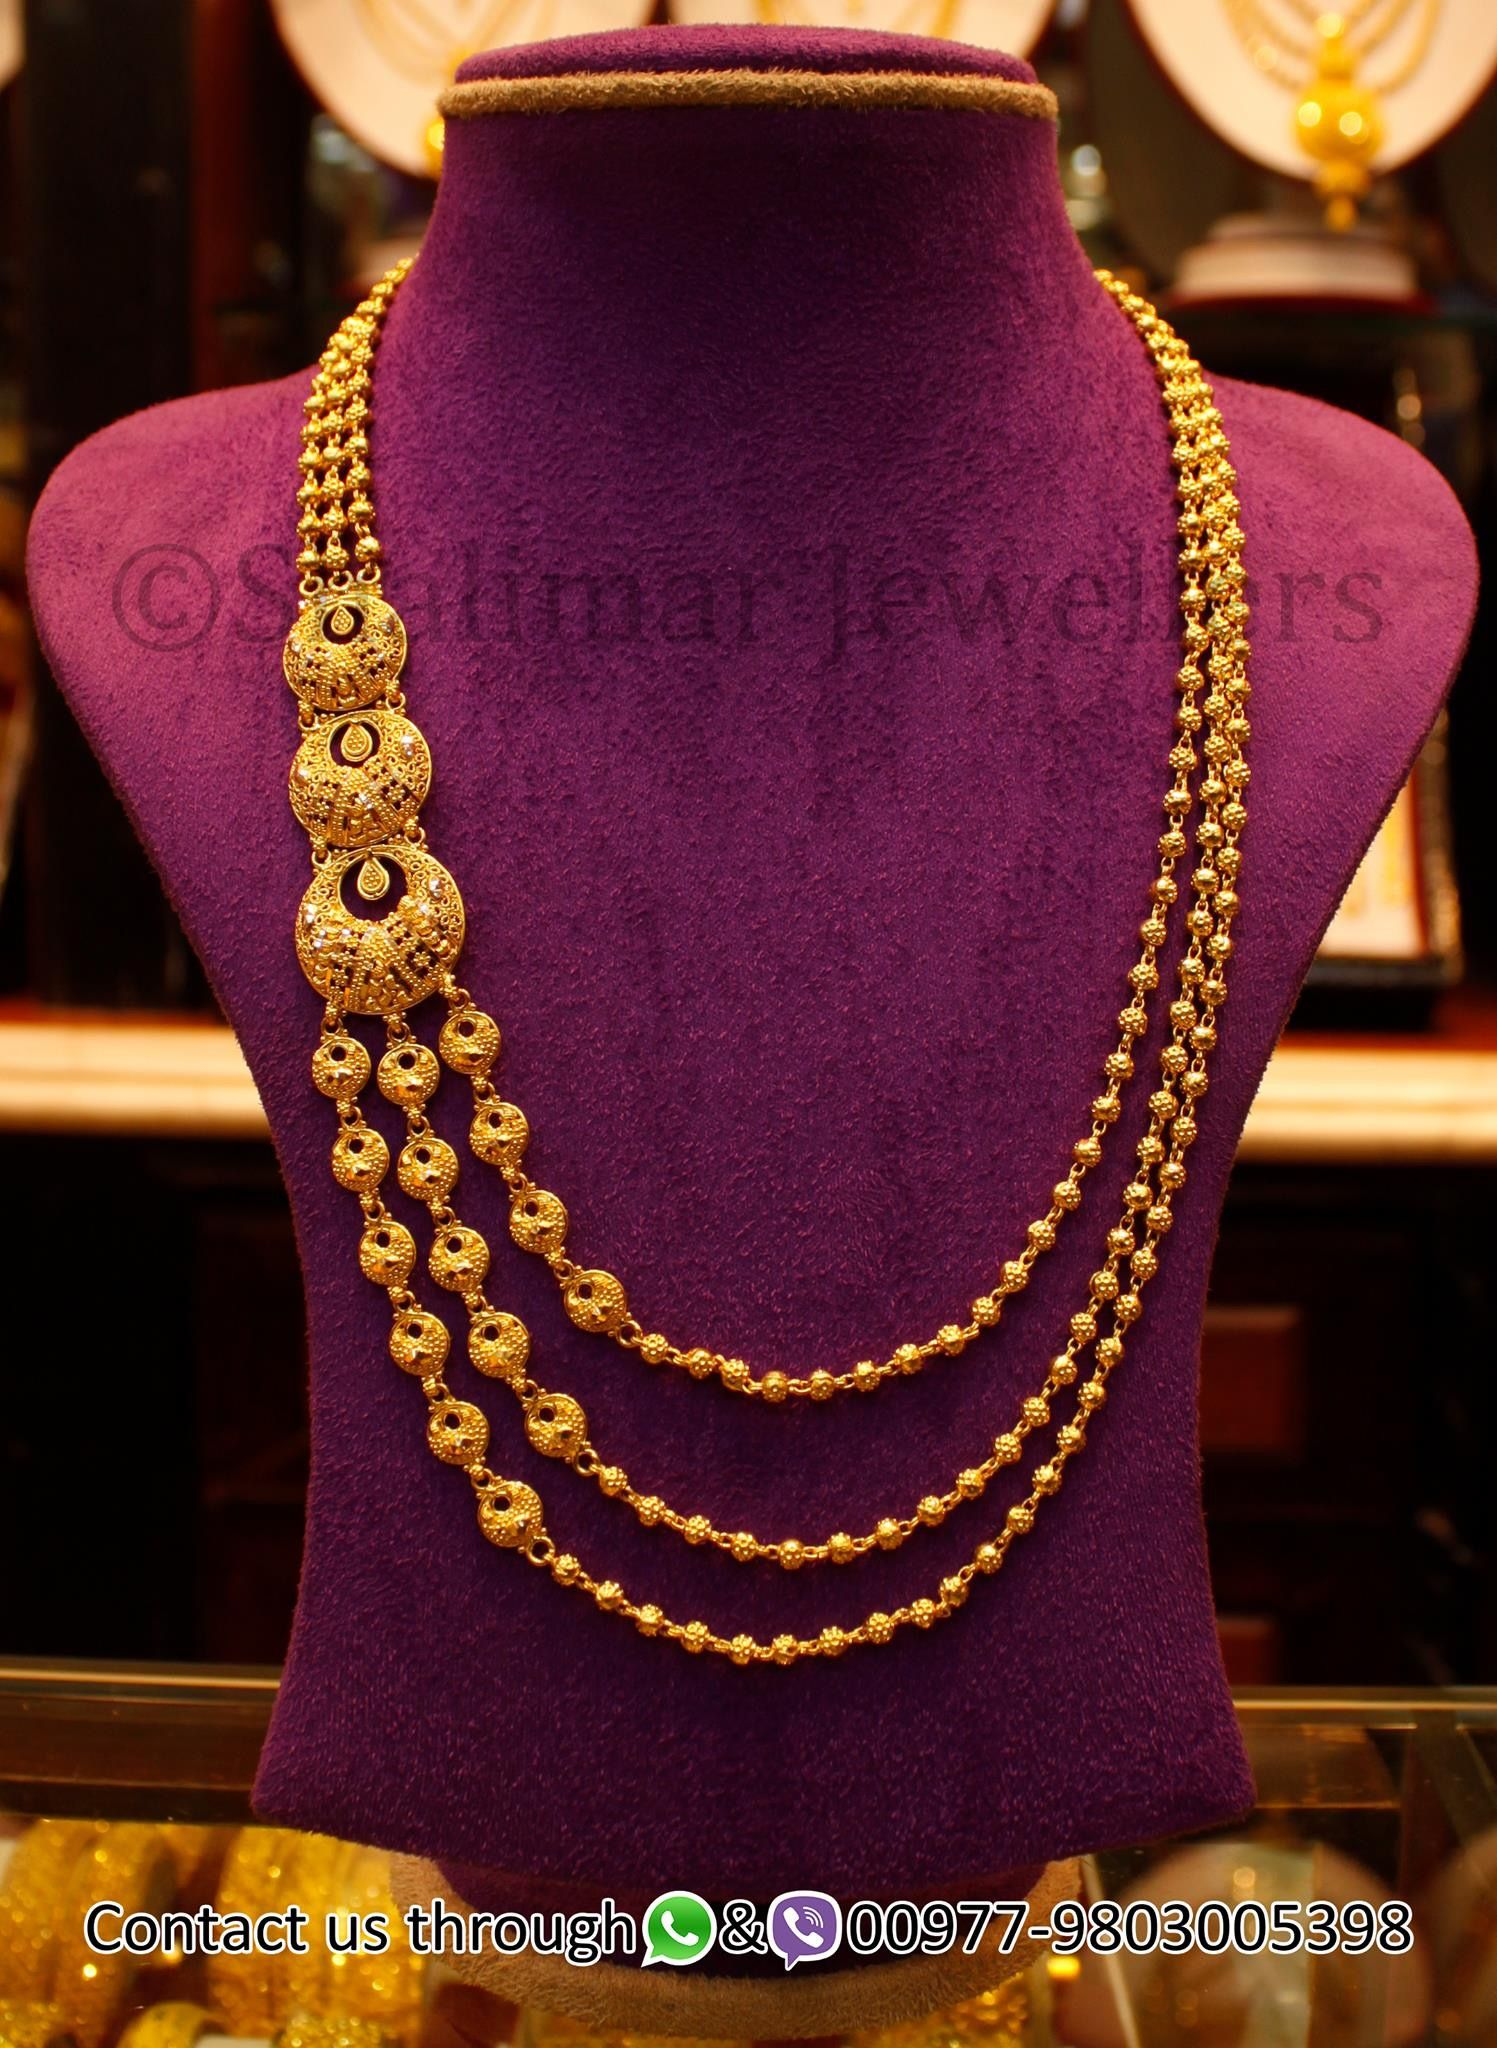 Goldjewelleryrajasthani Gold Fashion Necklace Gold Jewellery Design Necklaces Gold Necklace Indian Bridal Jewelry